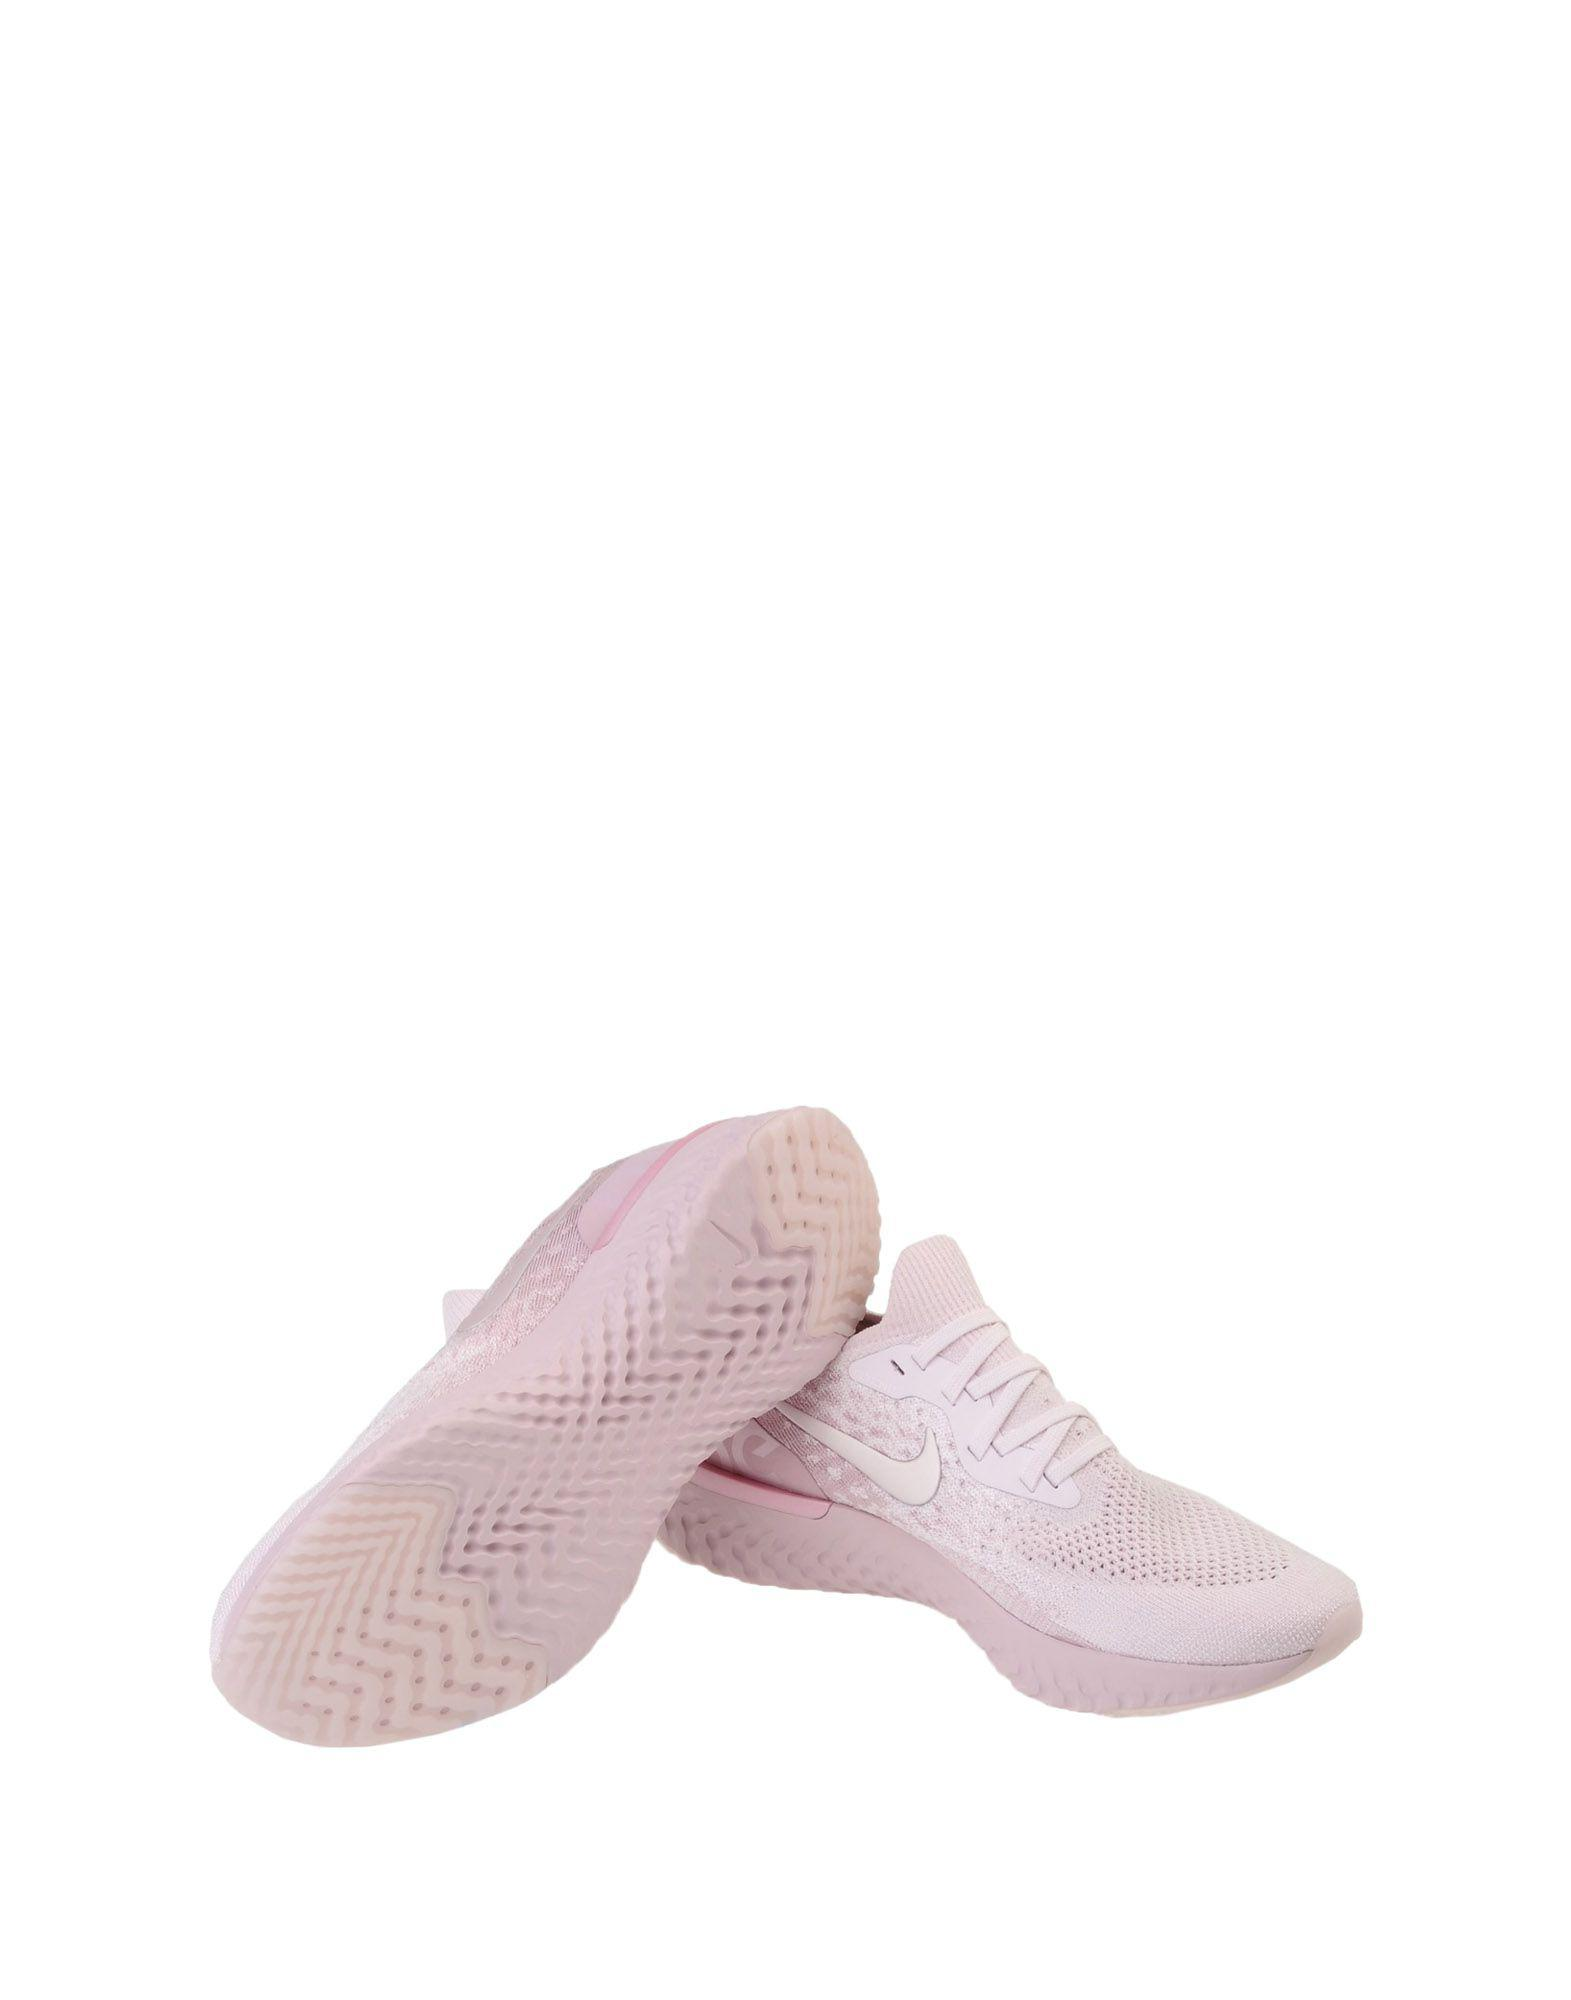 Nike Low-tops & Sneakers in Light Pink (Pink) for Men